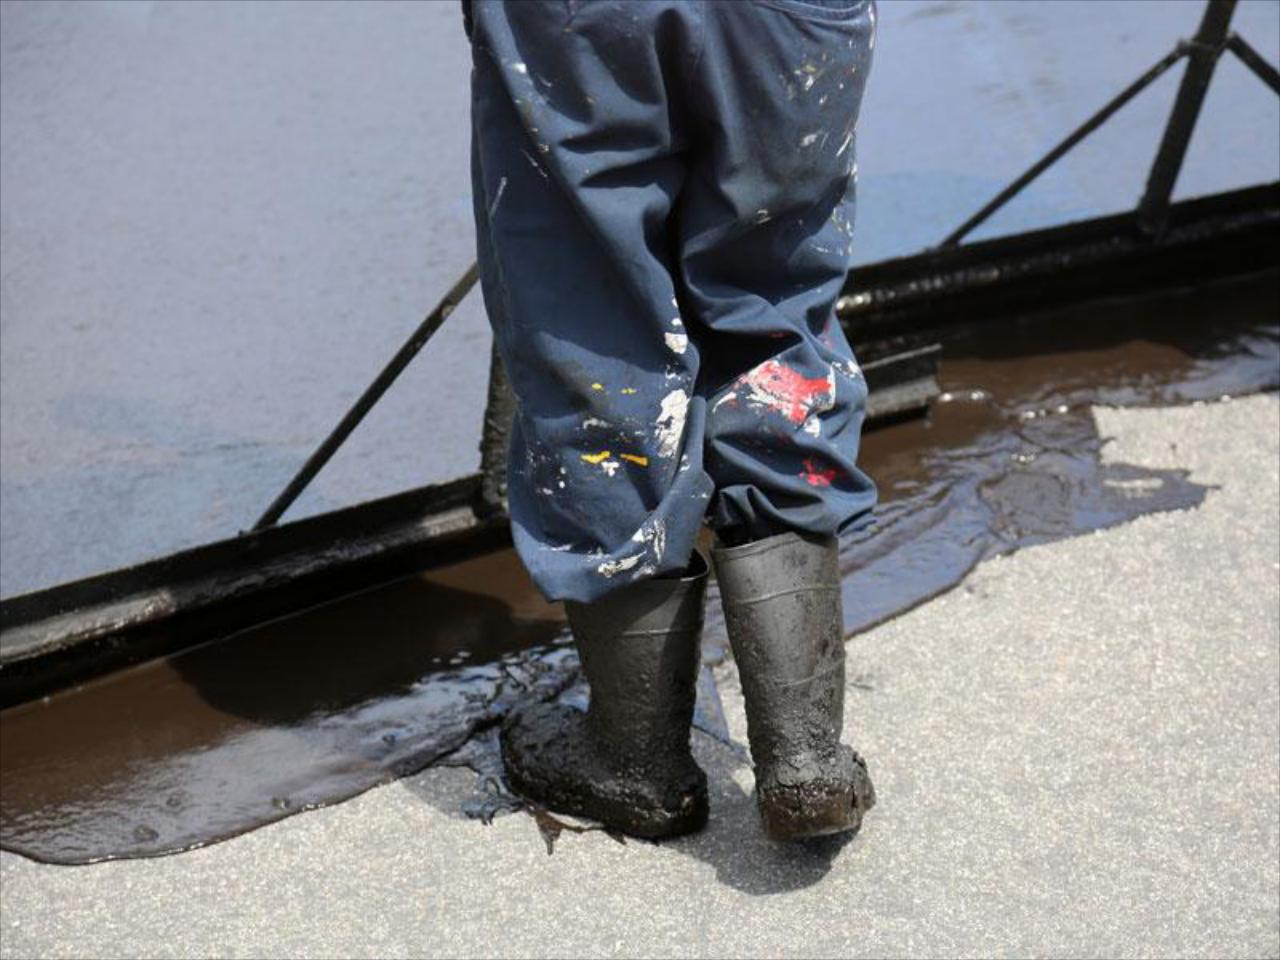 Get the most out of your asphalt with our professional, quality sealcoating services